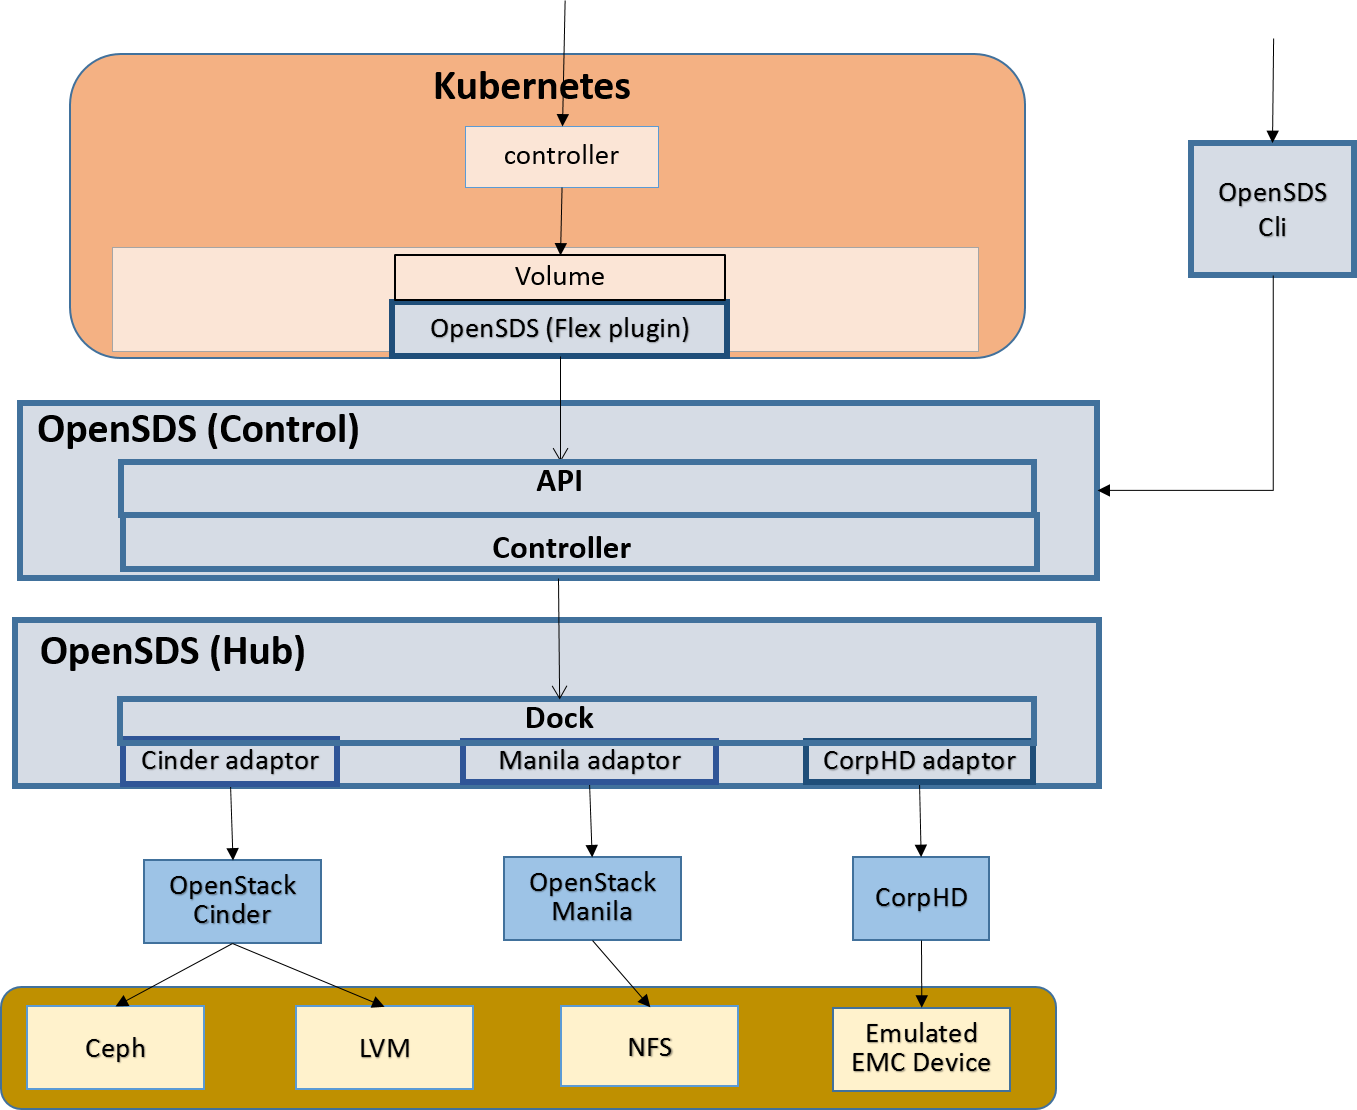 Opensds cncf cluster integration testing opensds for deployments opensds usually could be compiled into two separate modules control module and hub module opensds control contains the api and controller pooptronica Choice Image